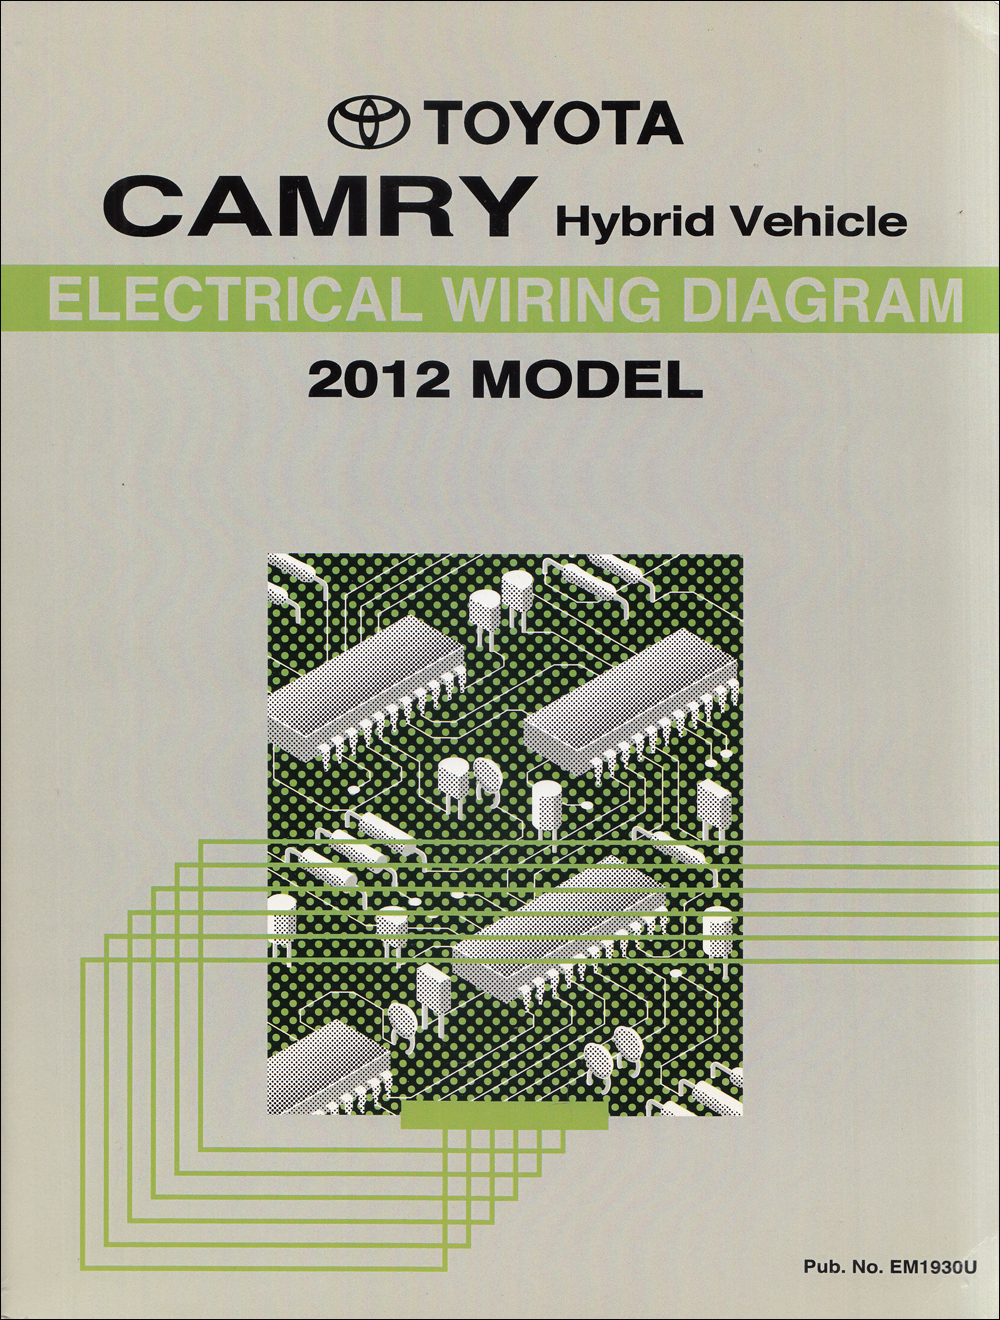 2012 Toyota Camry Hybrid Wiring Diagram Manual Reprint Of